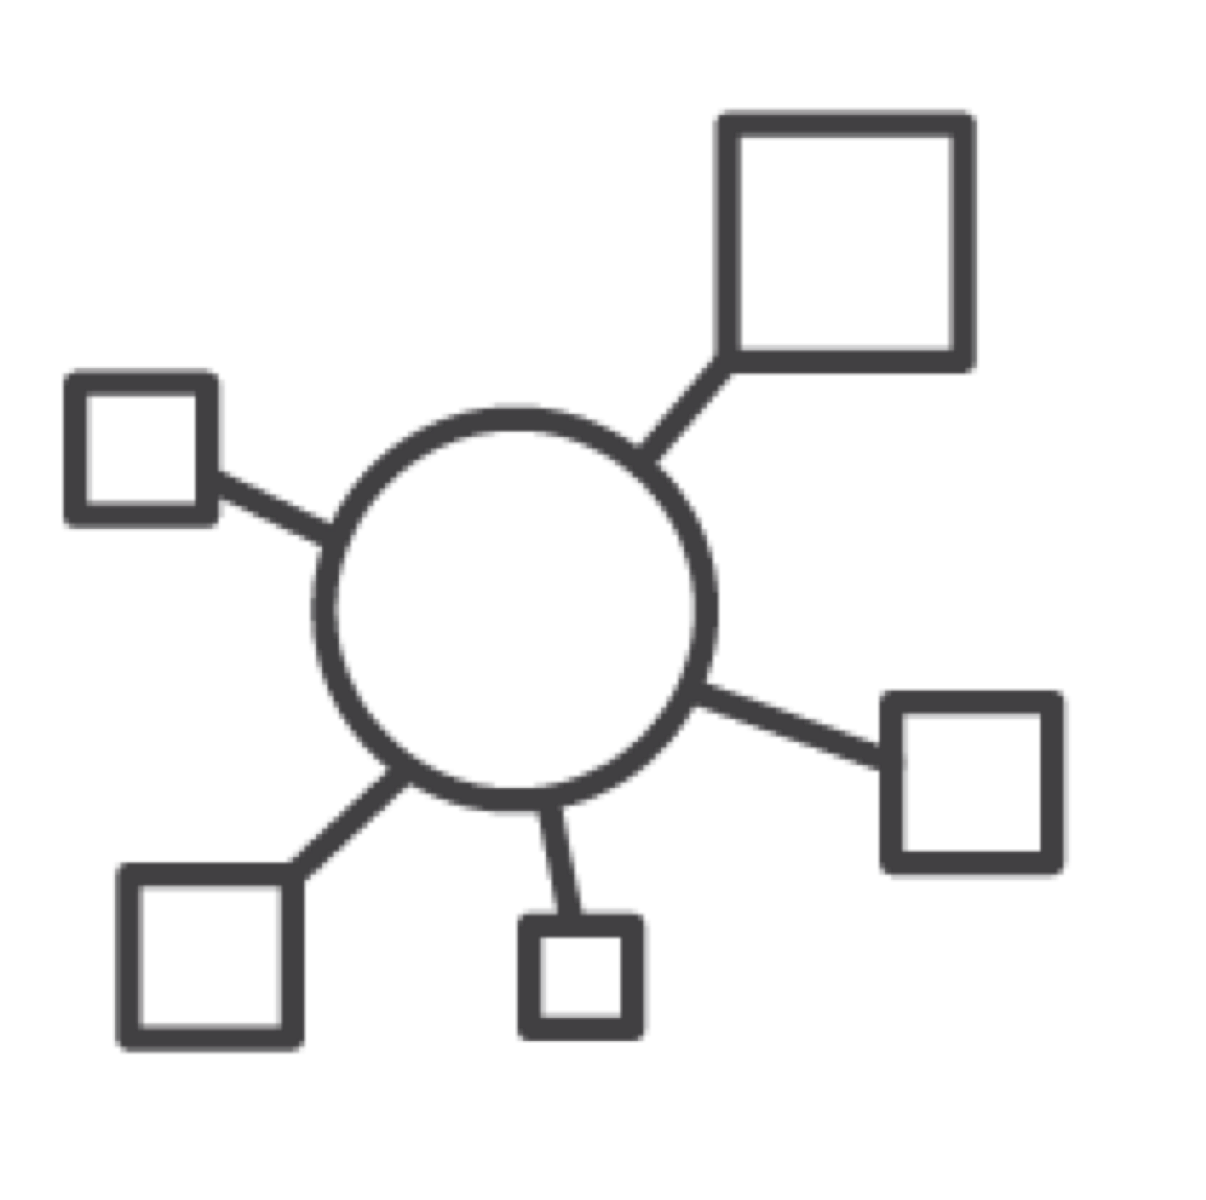 circle connected to five squares of different sizes